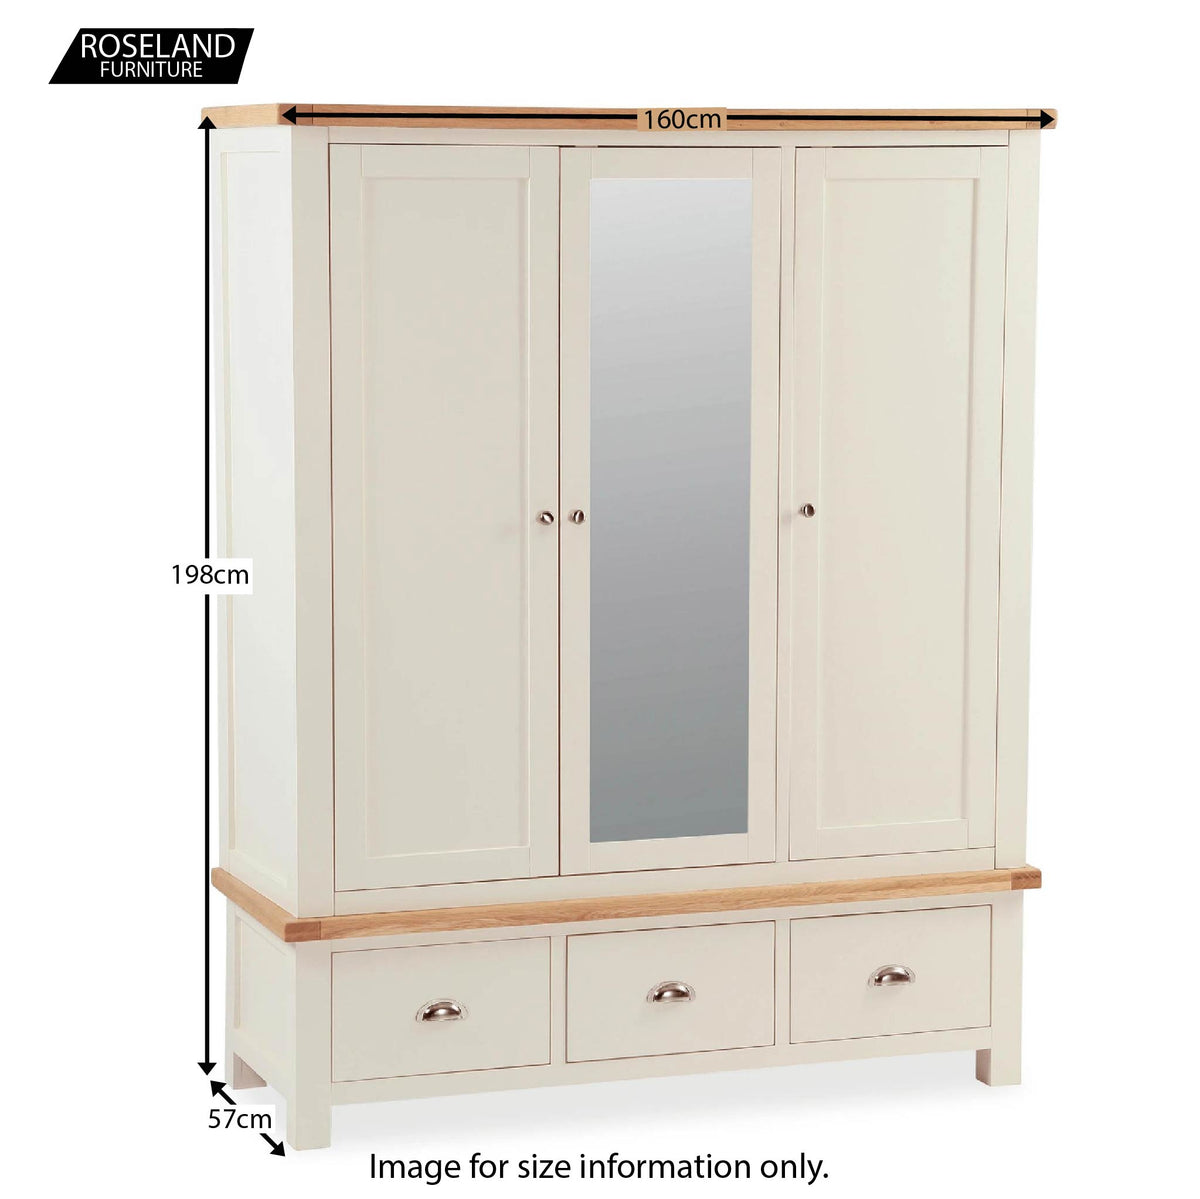 Daymer Cream Triple Wardrobe with Mirror and Drawers - Size Guide